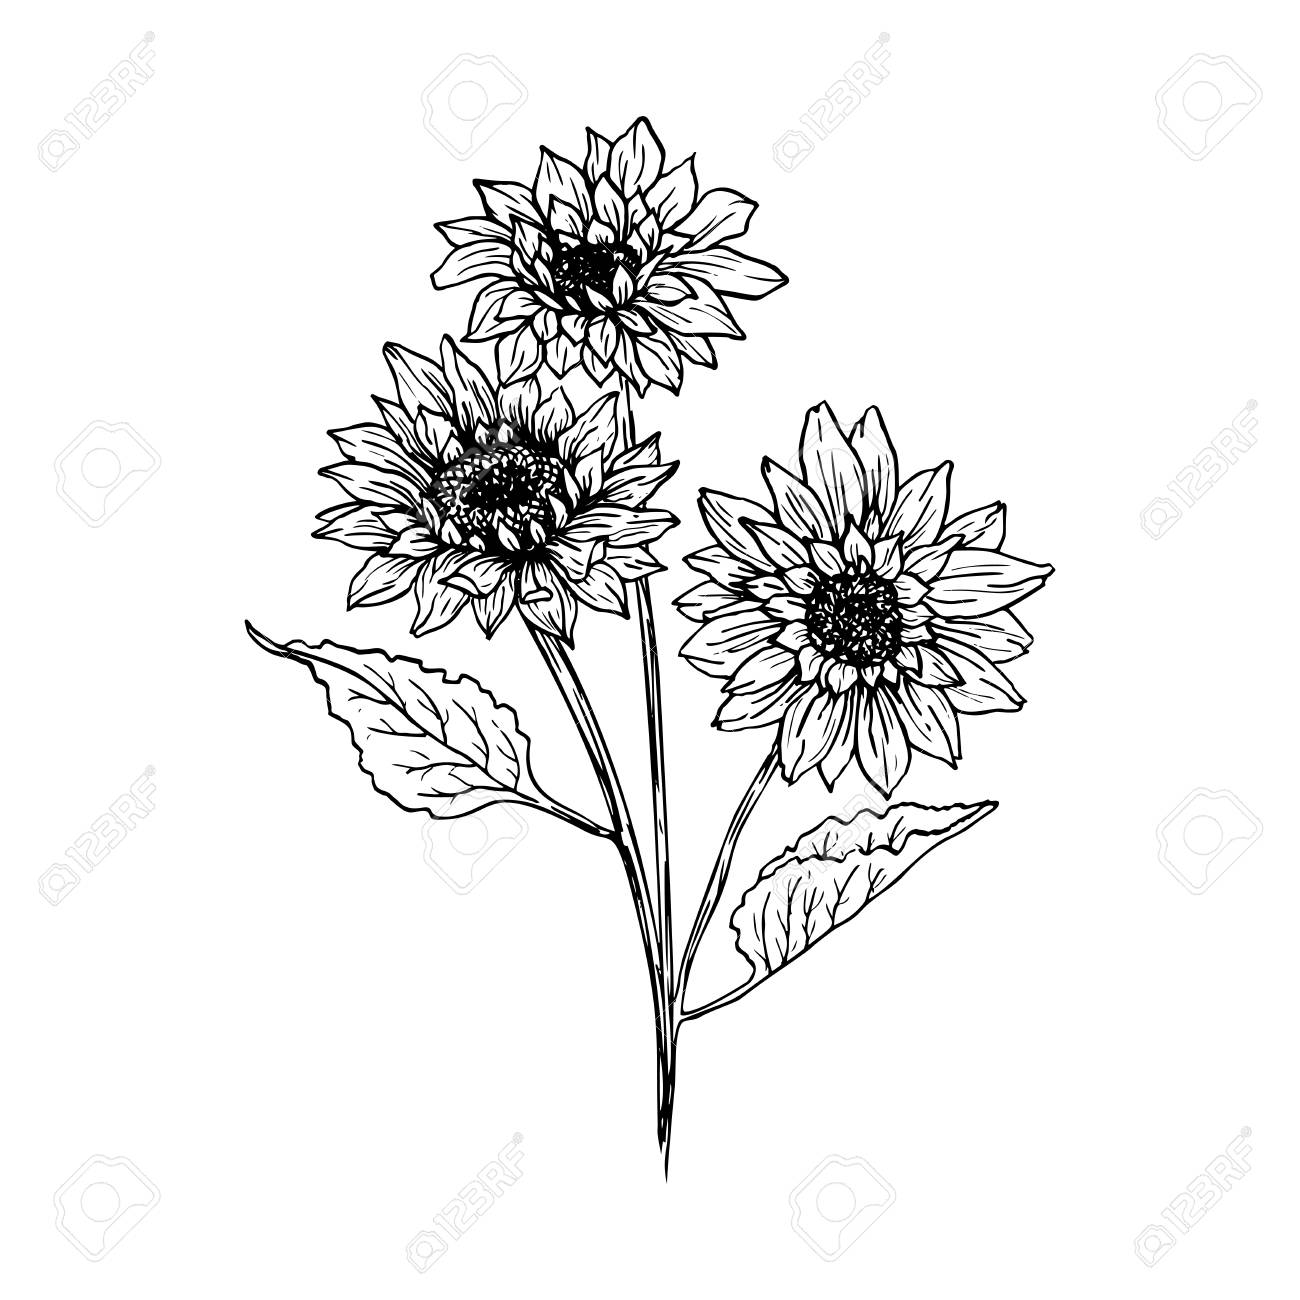 Sunflower hand drawn vector illustration floral ink pen sketch